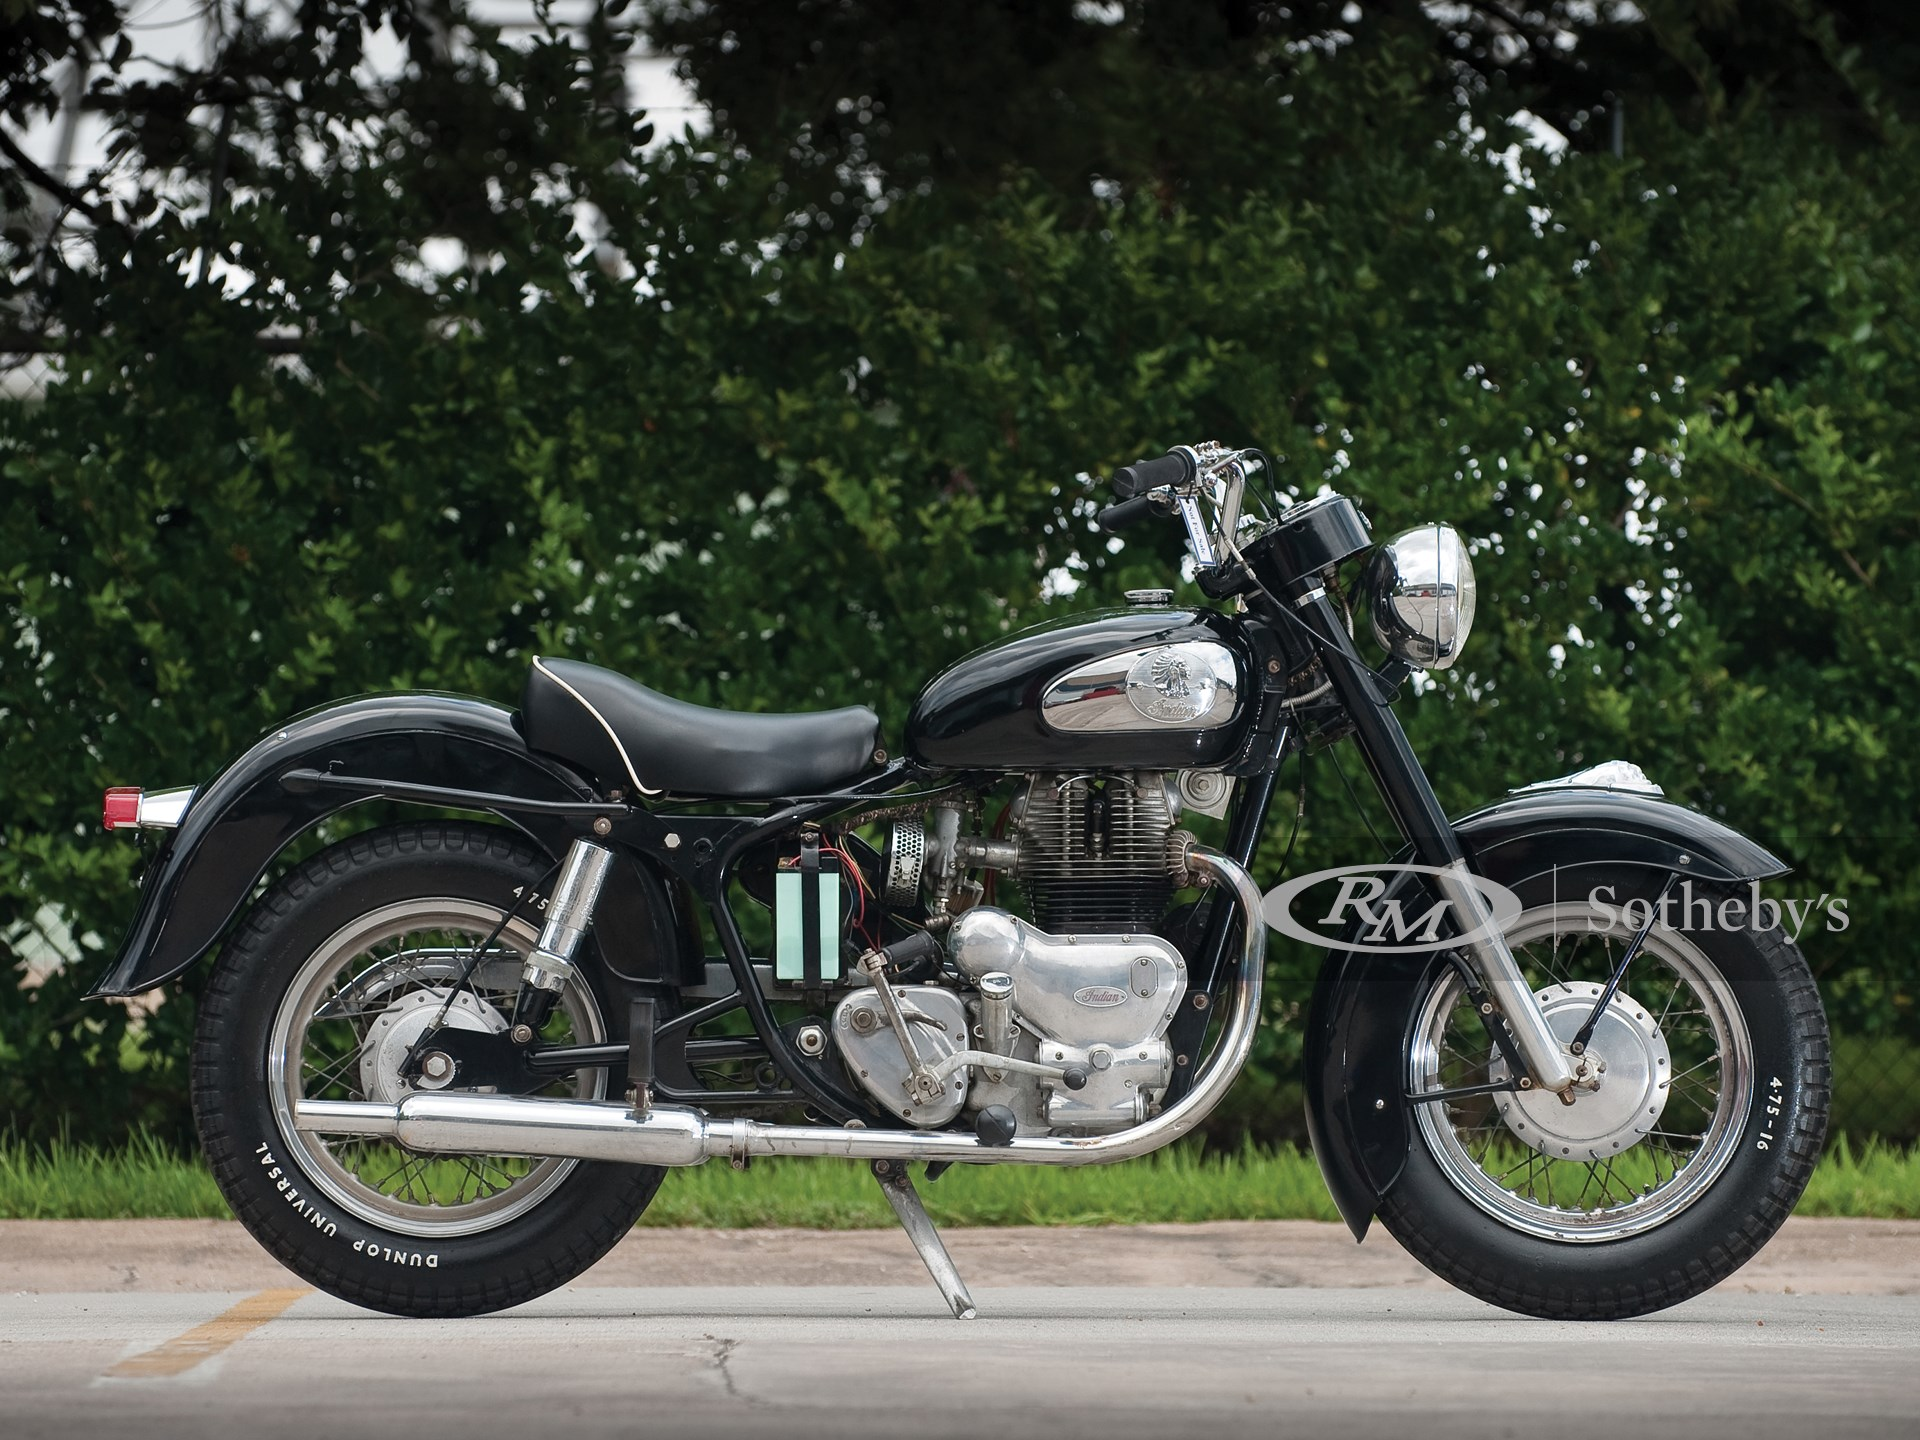 1960 Indian-Enfield Motorcycle